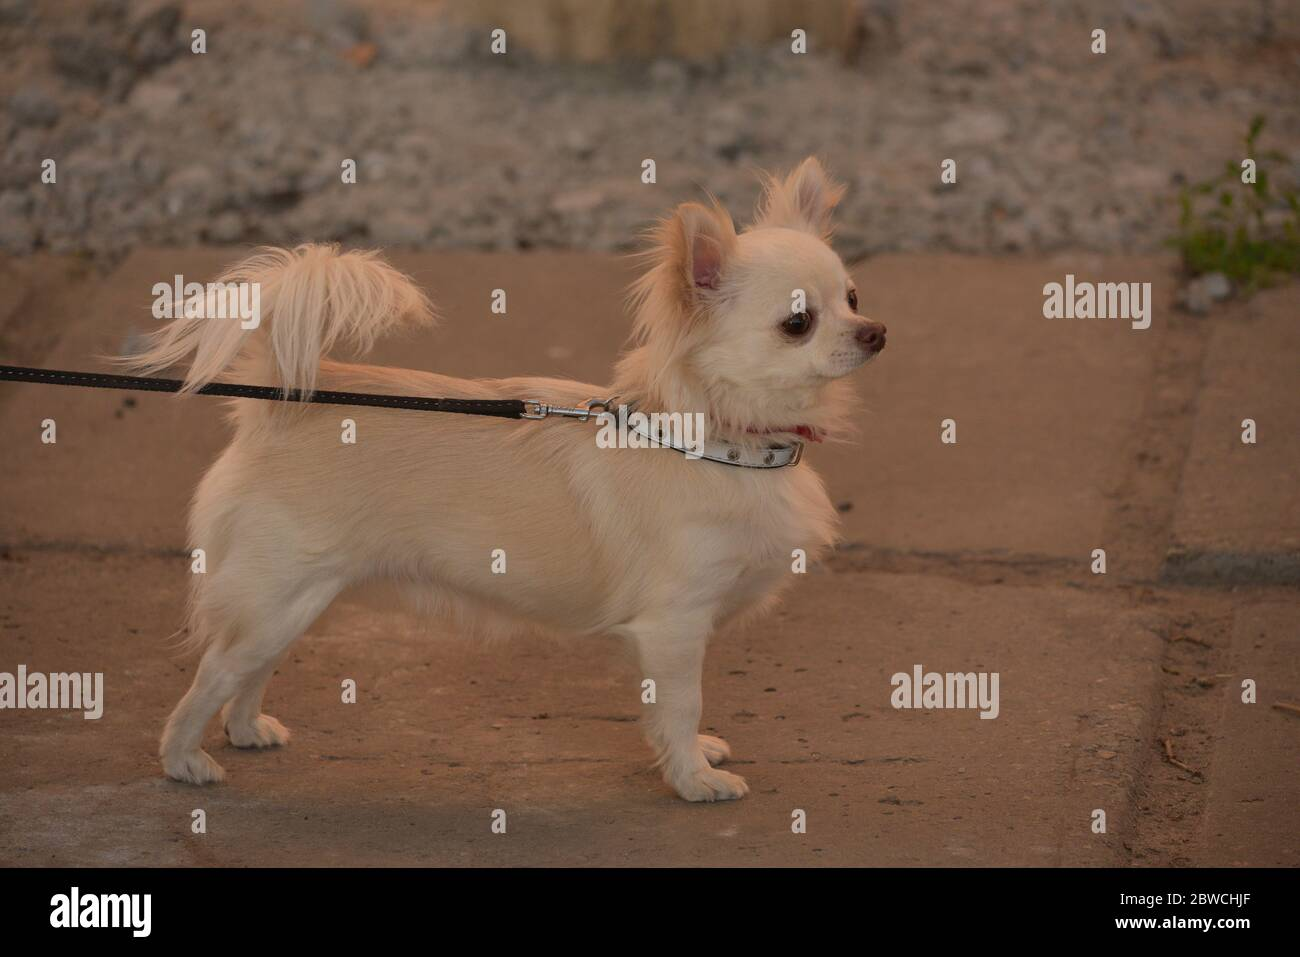 Chihuahua longhaired dog portrait. Beautiful white long-haired chihuahua breed dog walks in tall green grass. Stock Photo